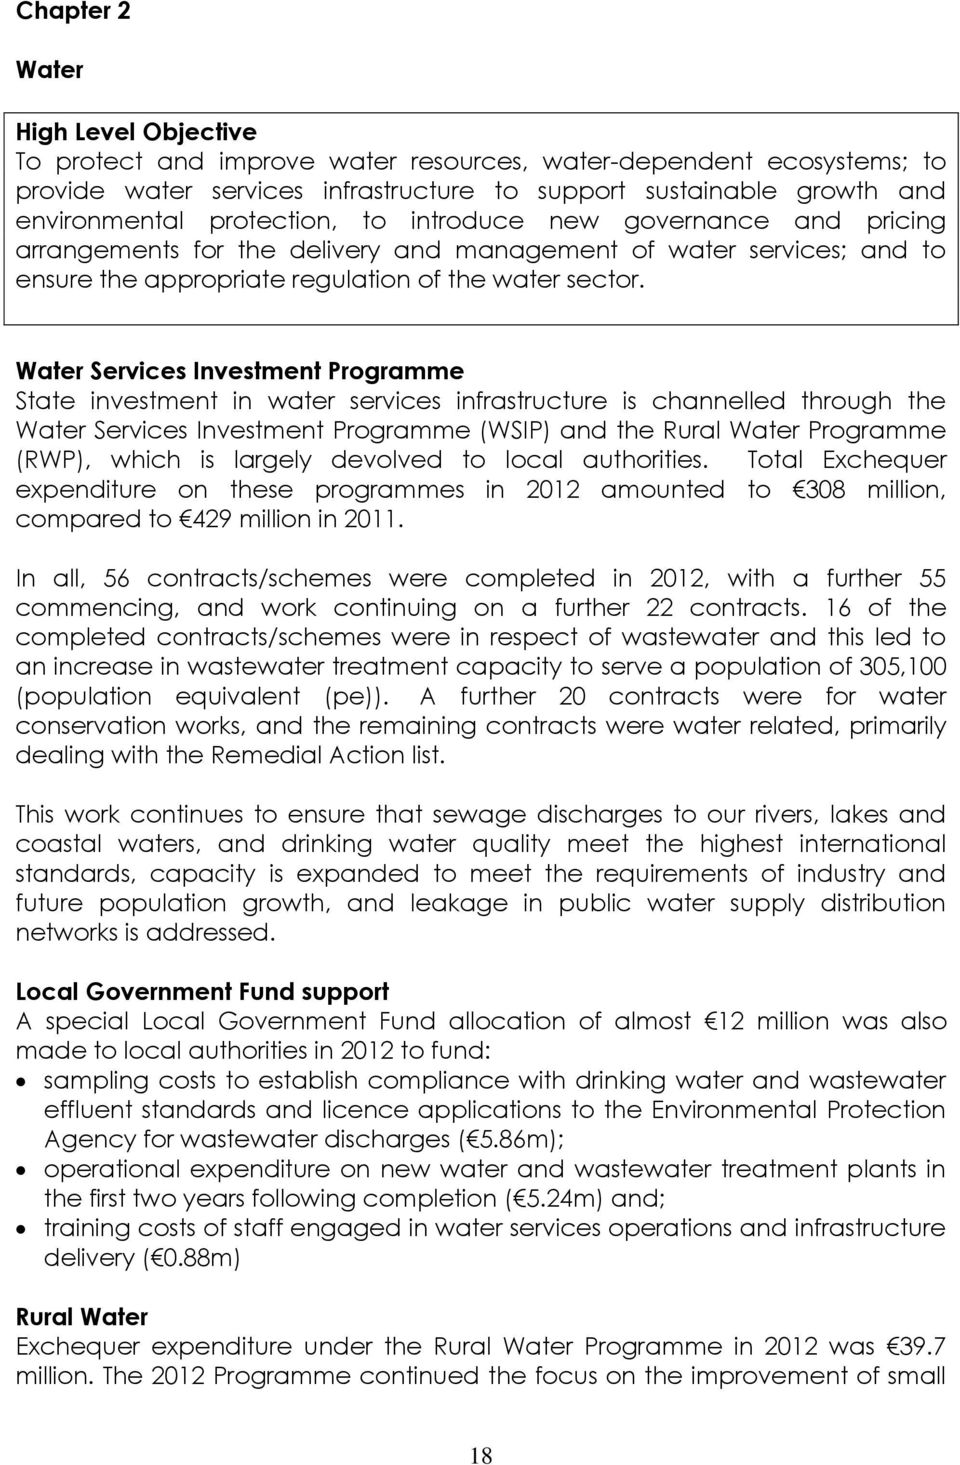 Water Services Investment Programme State investment in water services infrastructure is channelled through the Water Services Investment Programme (WSIP) and the Rural Water Programme (RWP), which